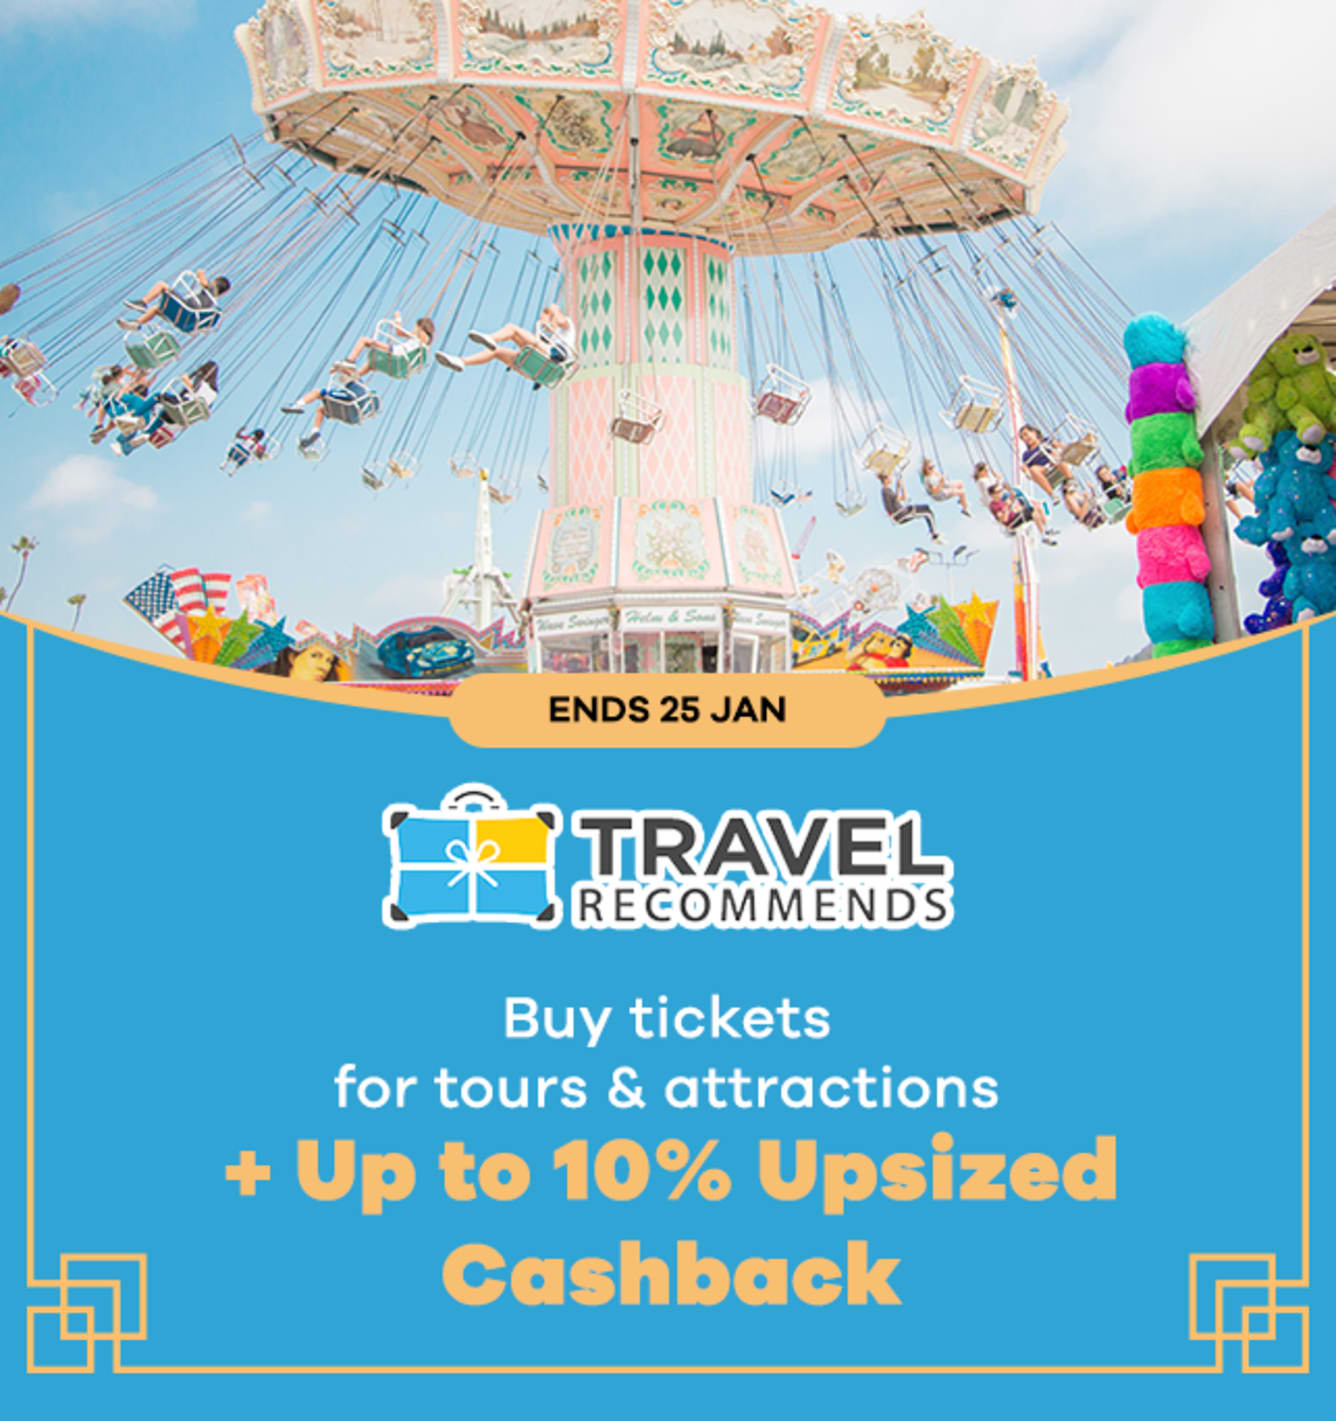 Travel Recommends <10% Upsized Cashback